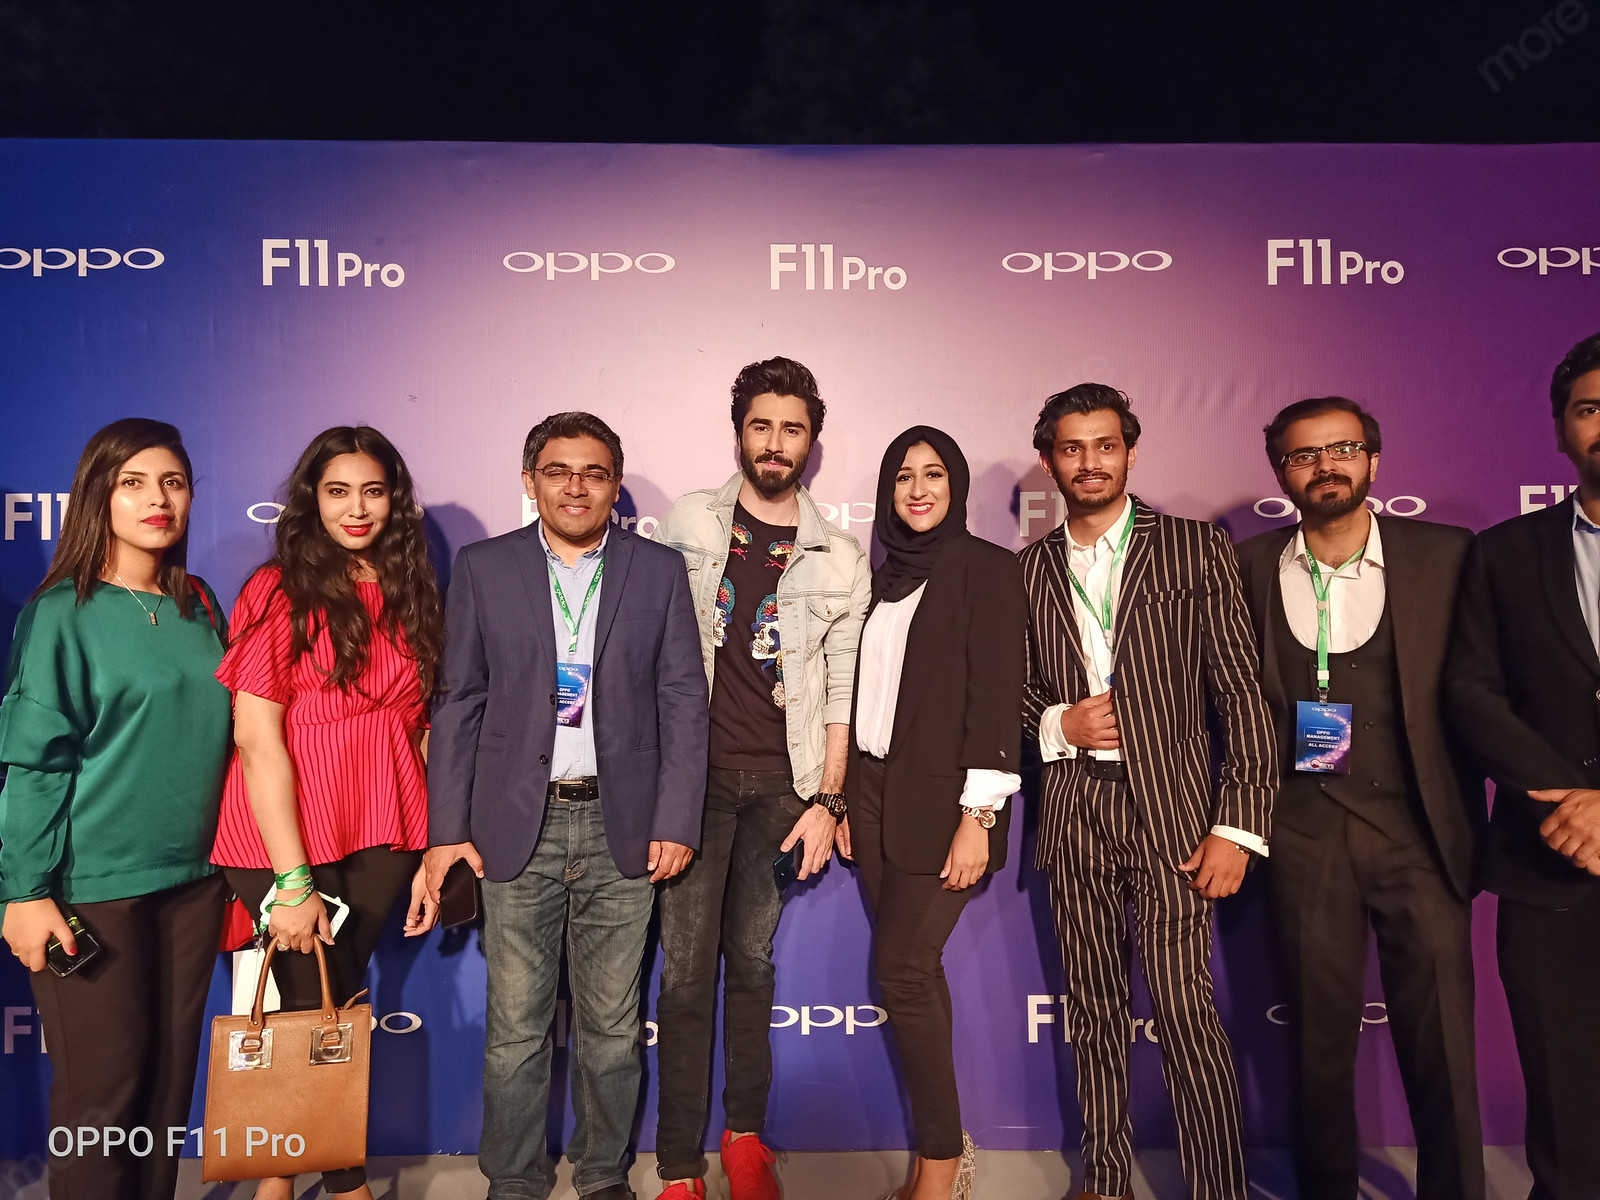 Oppo Team at the launch event of oppo f11 Pro